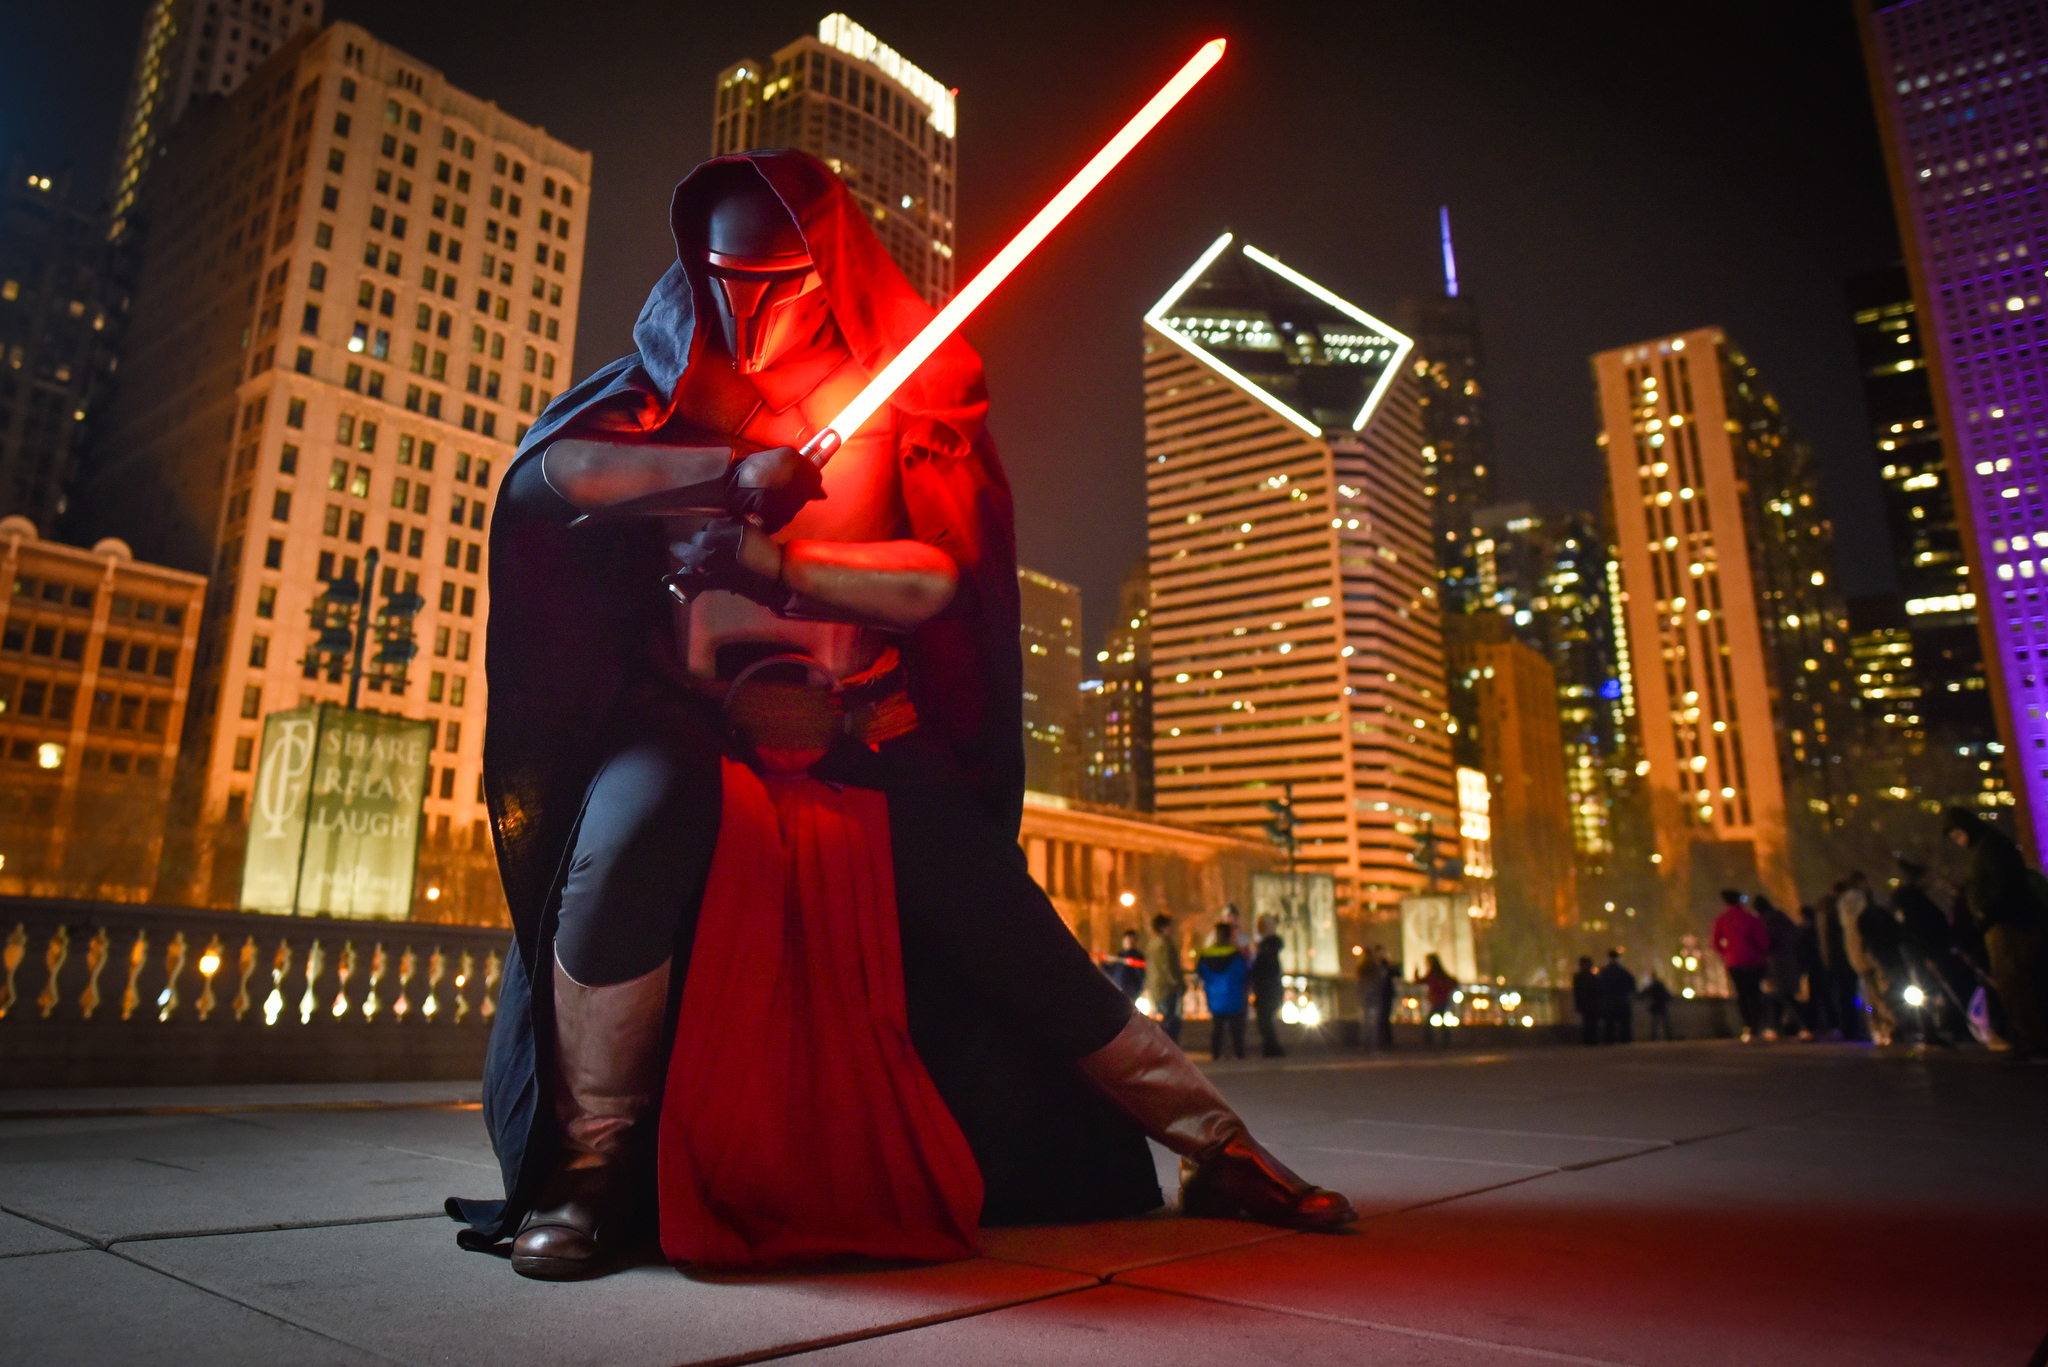 2019.04.14 - Star Wars Celebration Chicago 288874.JPG